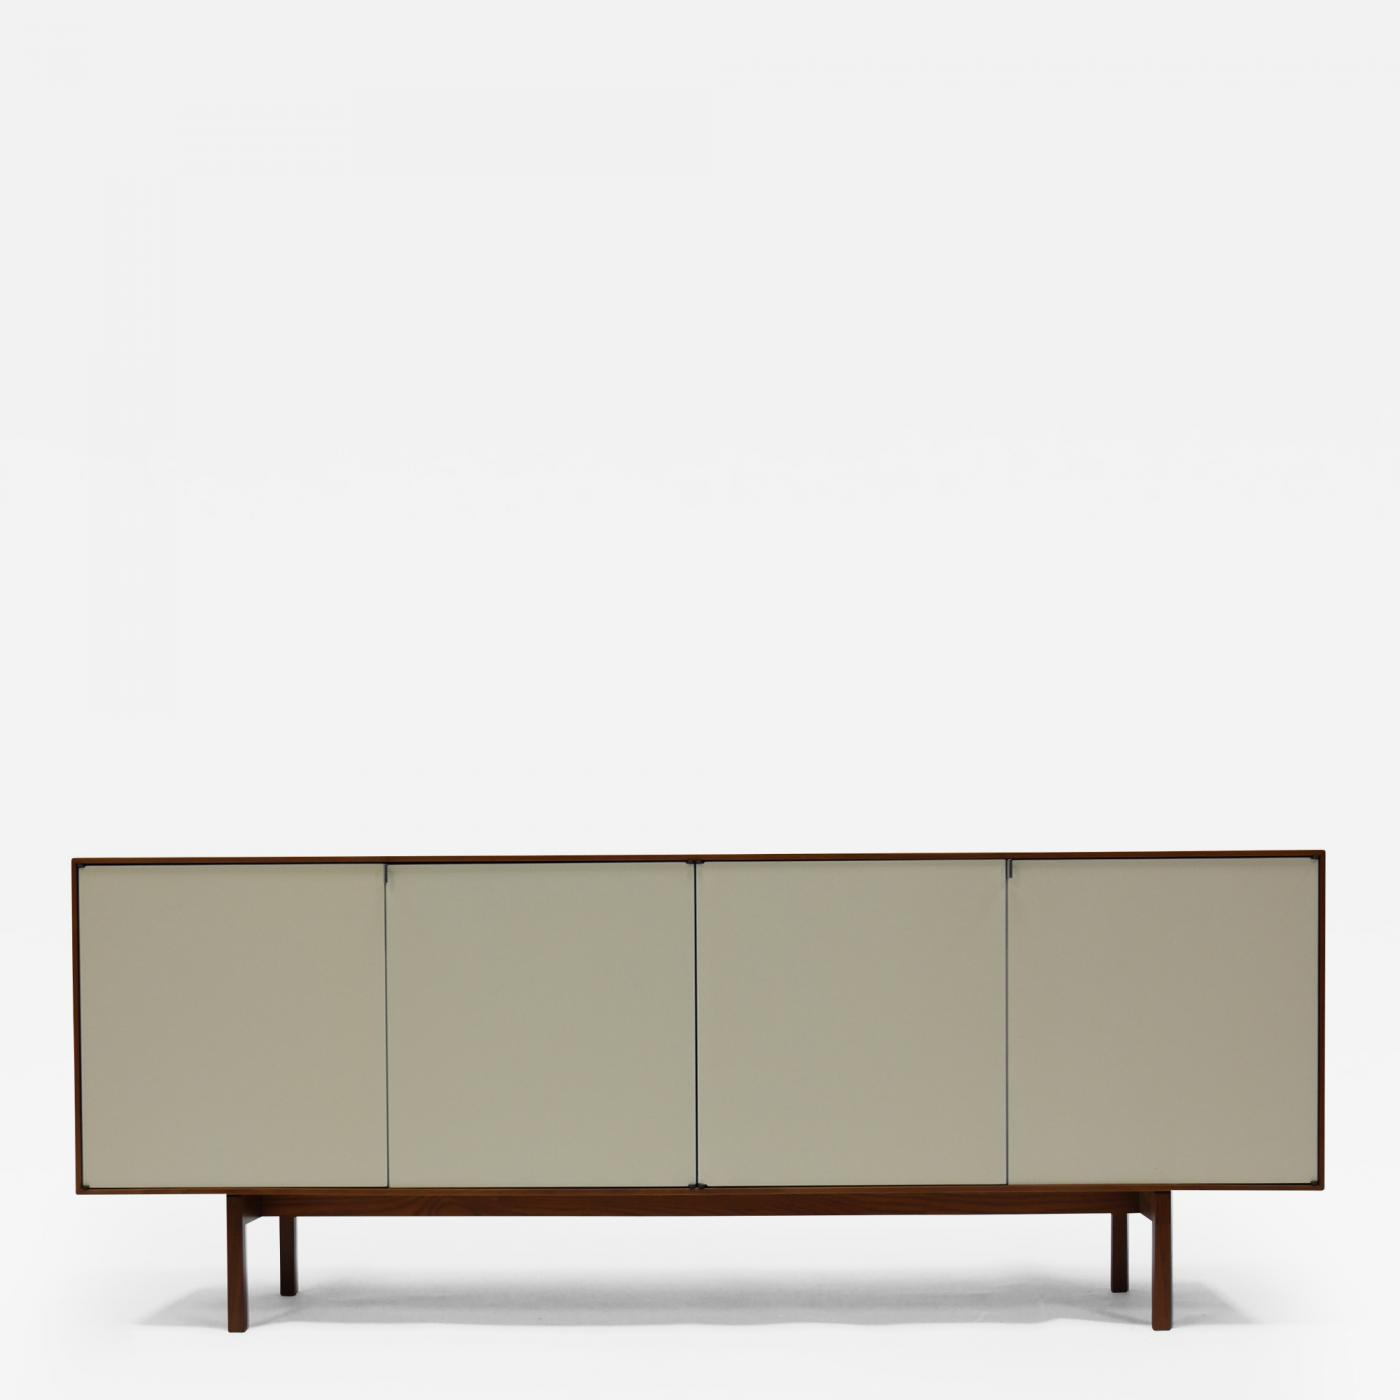 Design White Credenza florence knoll credenza in walnut and white lacquer by click on image to enlarge